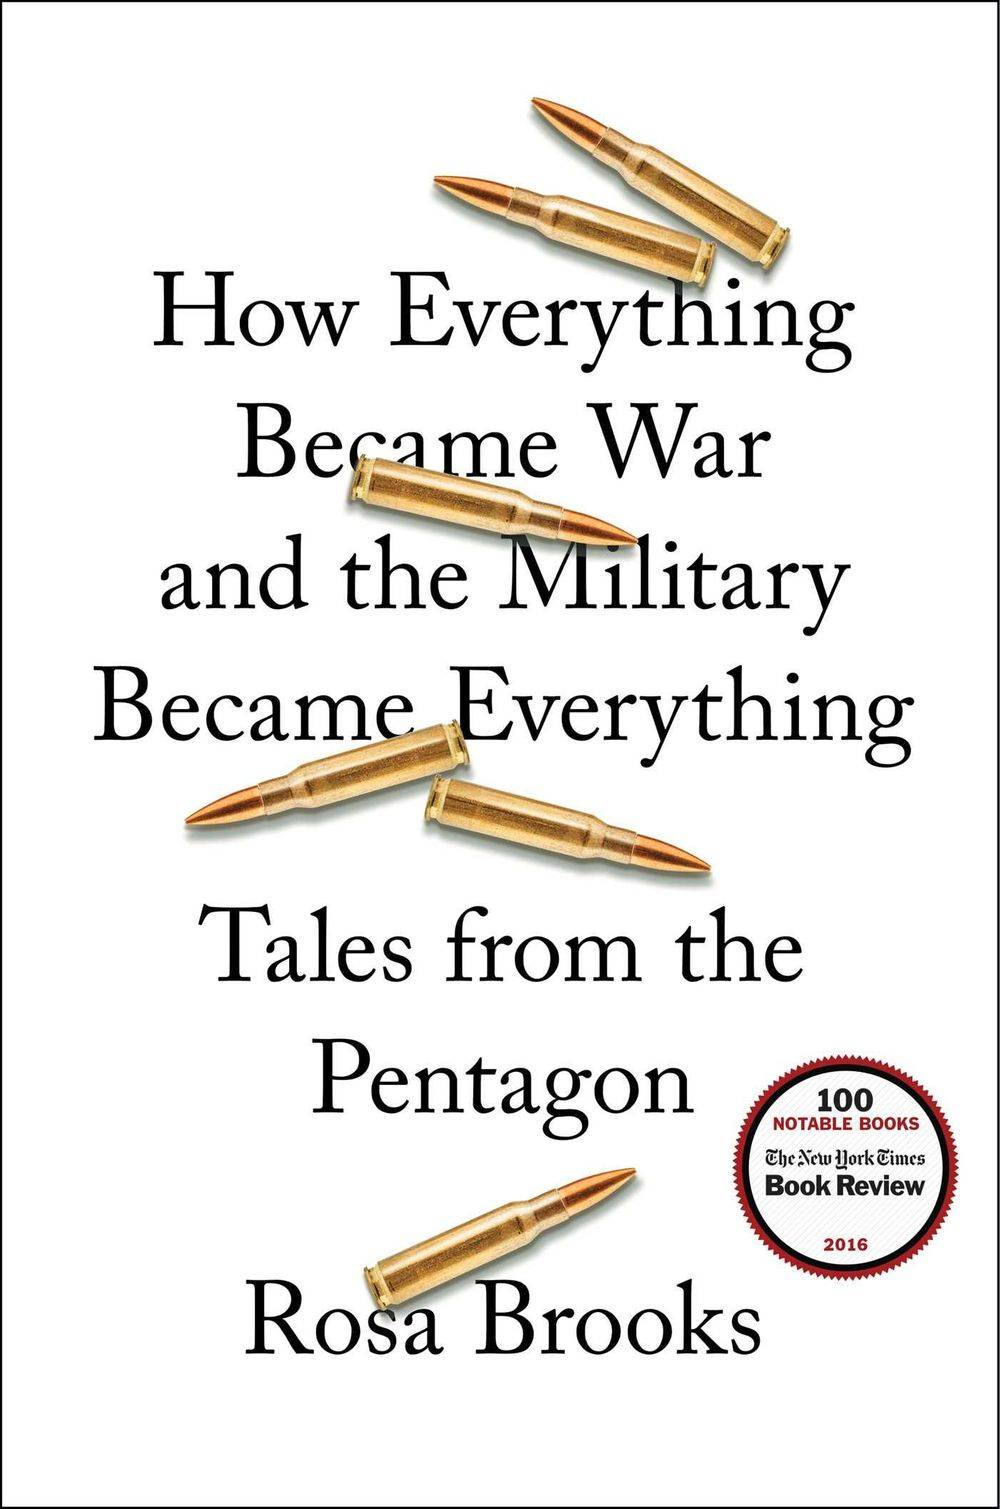 How Everything Became War and the Military Became Everything, Rosa Brooks, War Is My Business